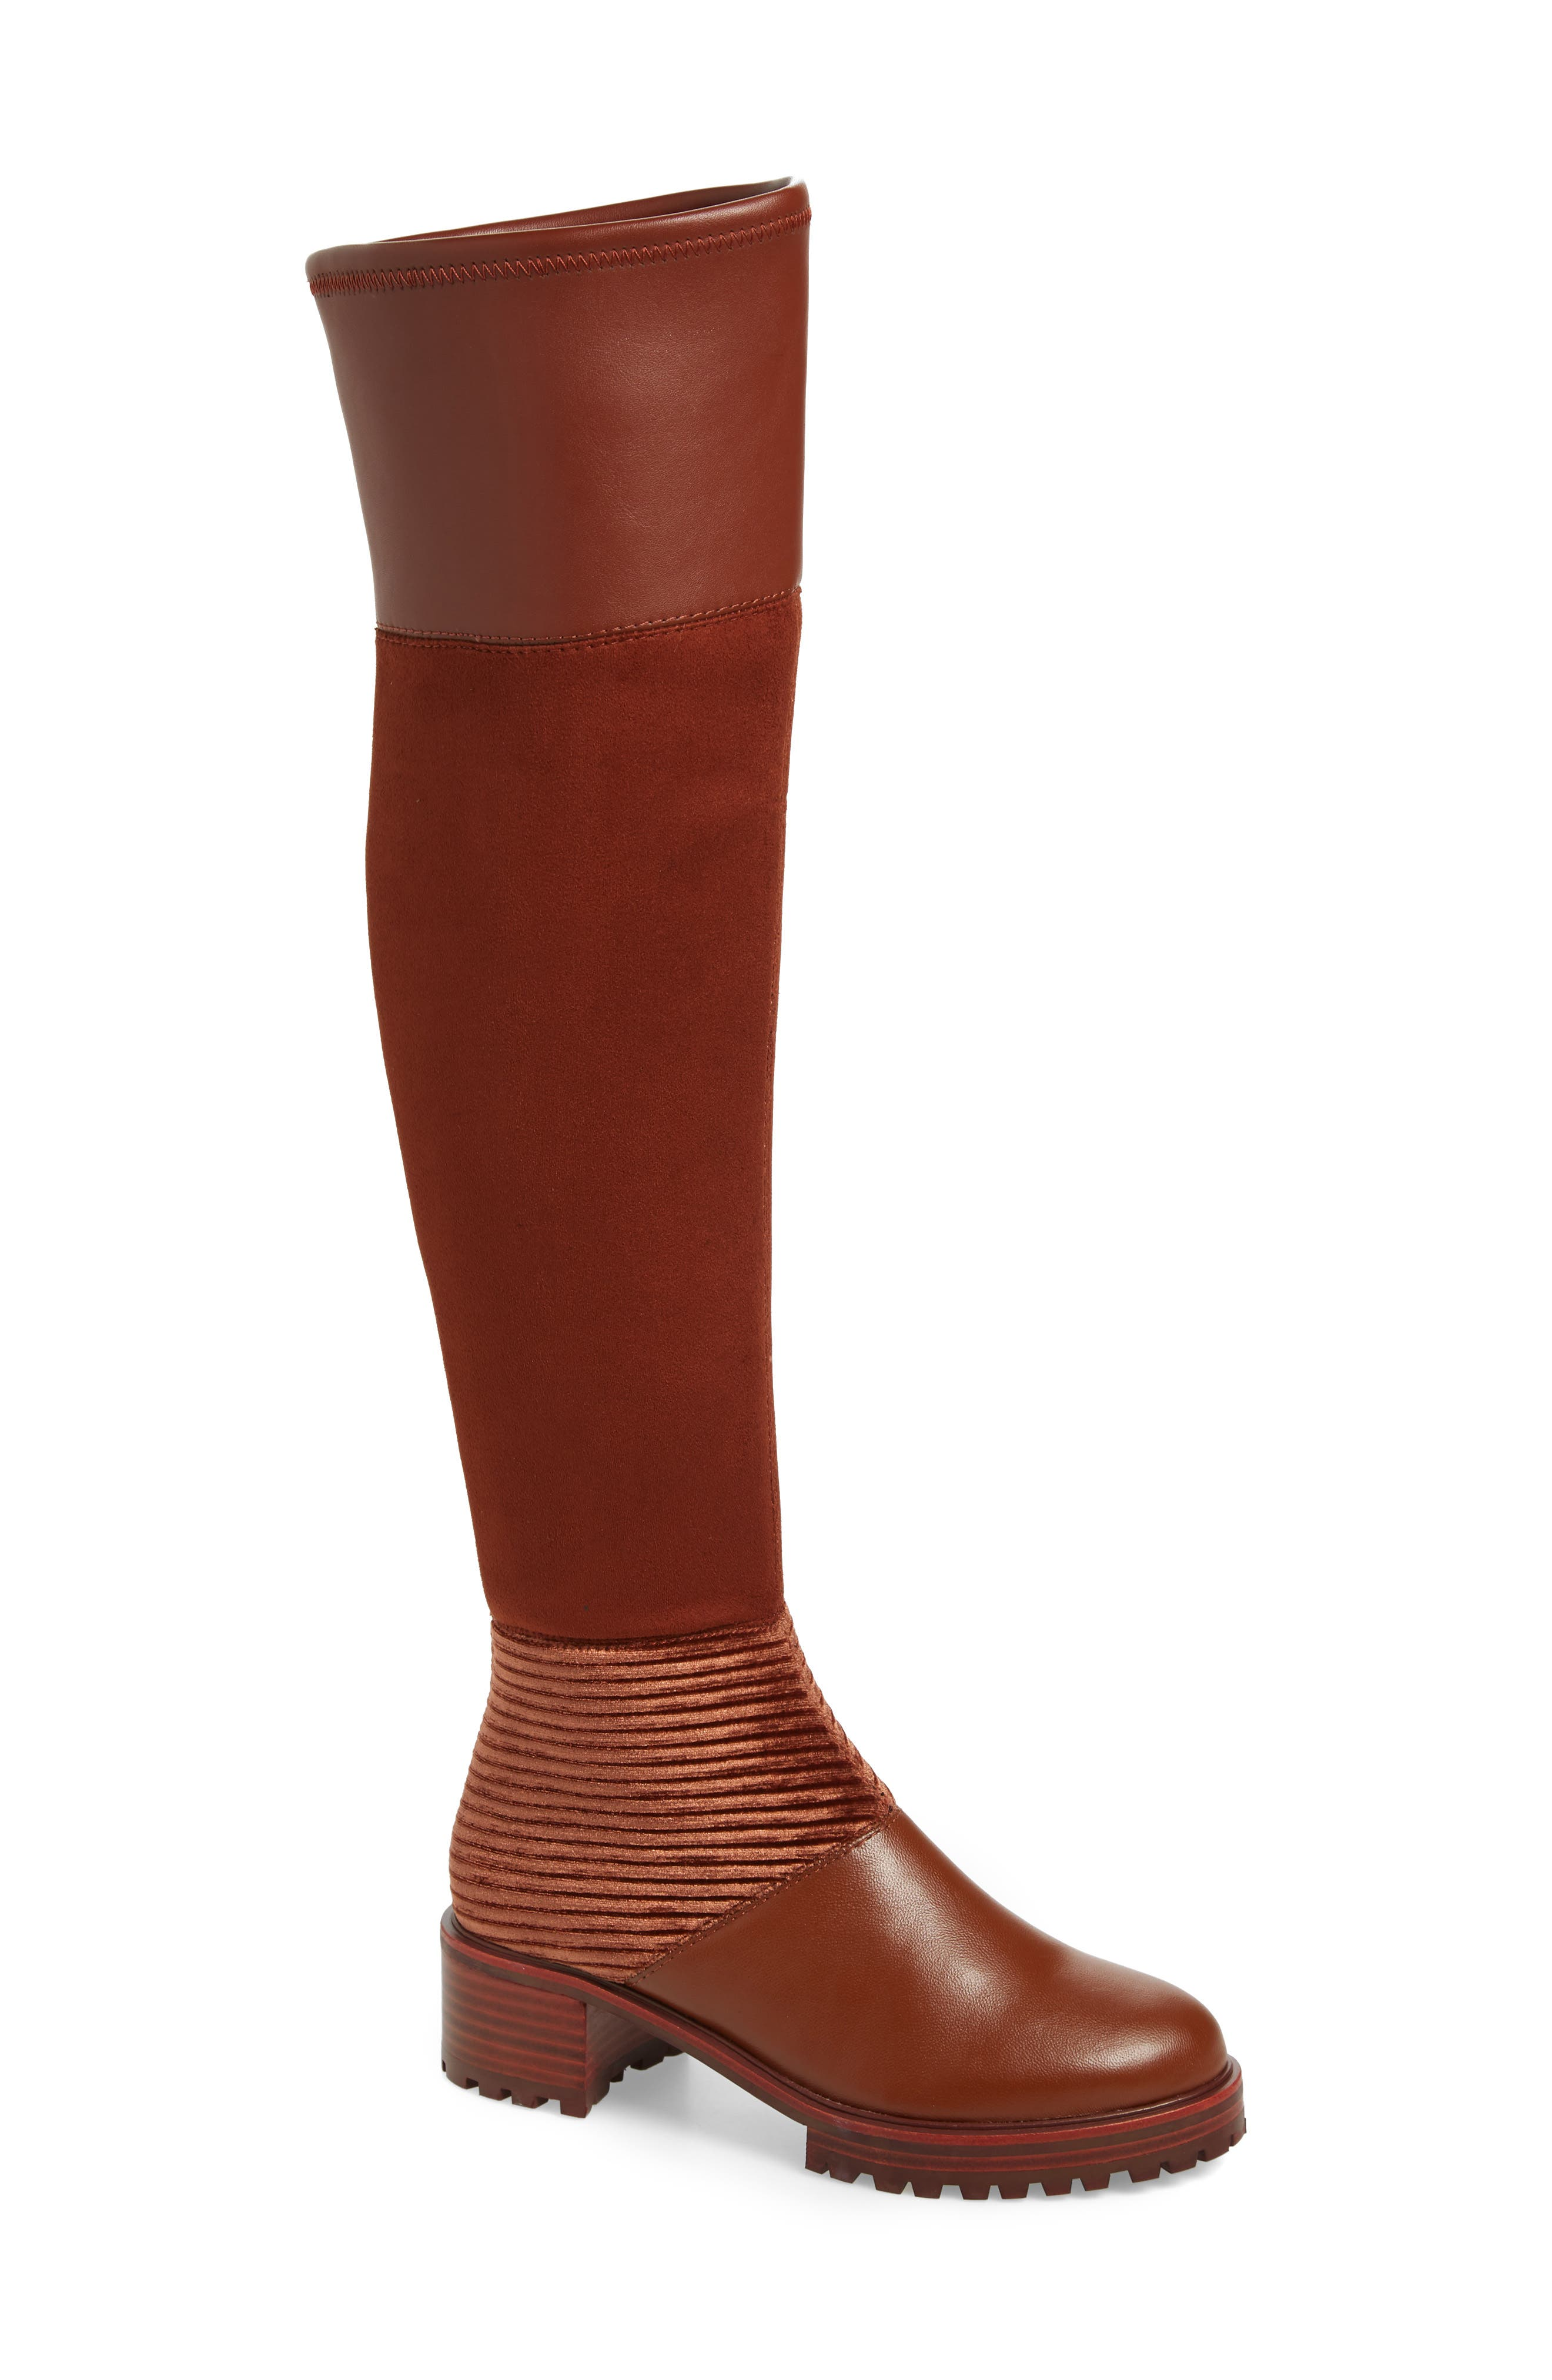 M4D3 Nakina Over The Knee Boot, Brown